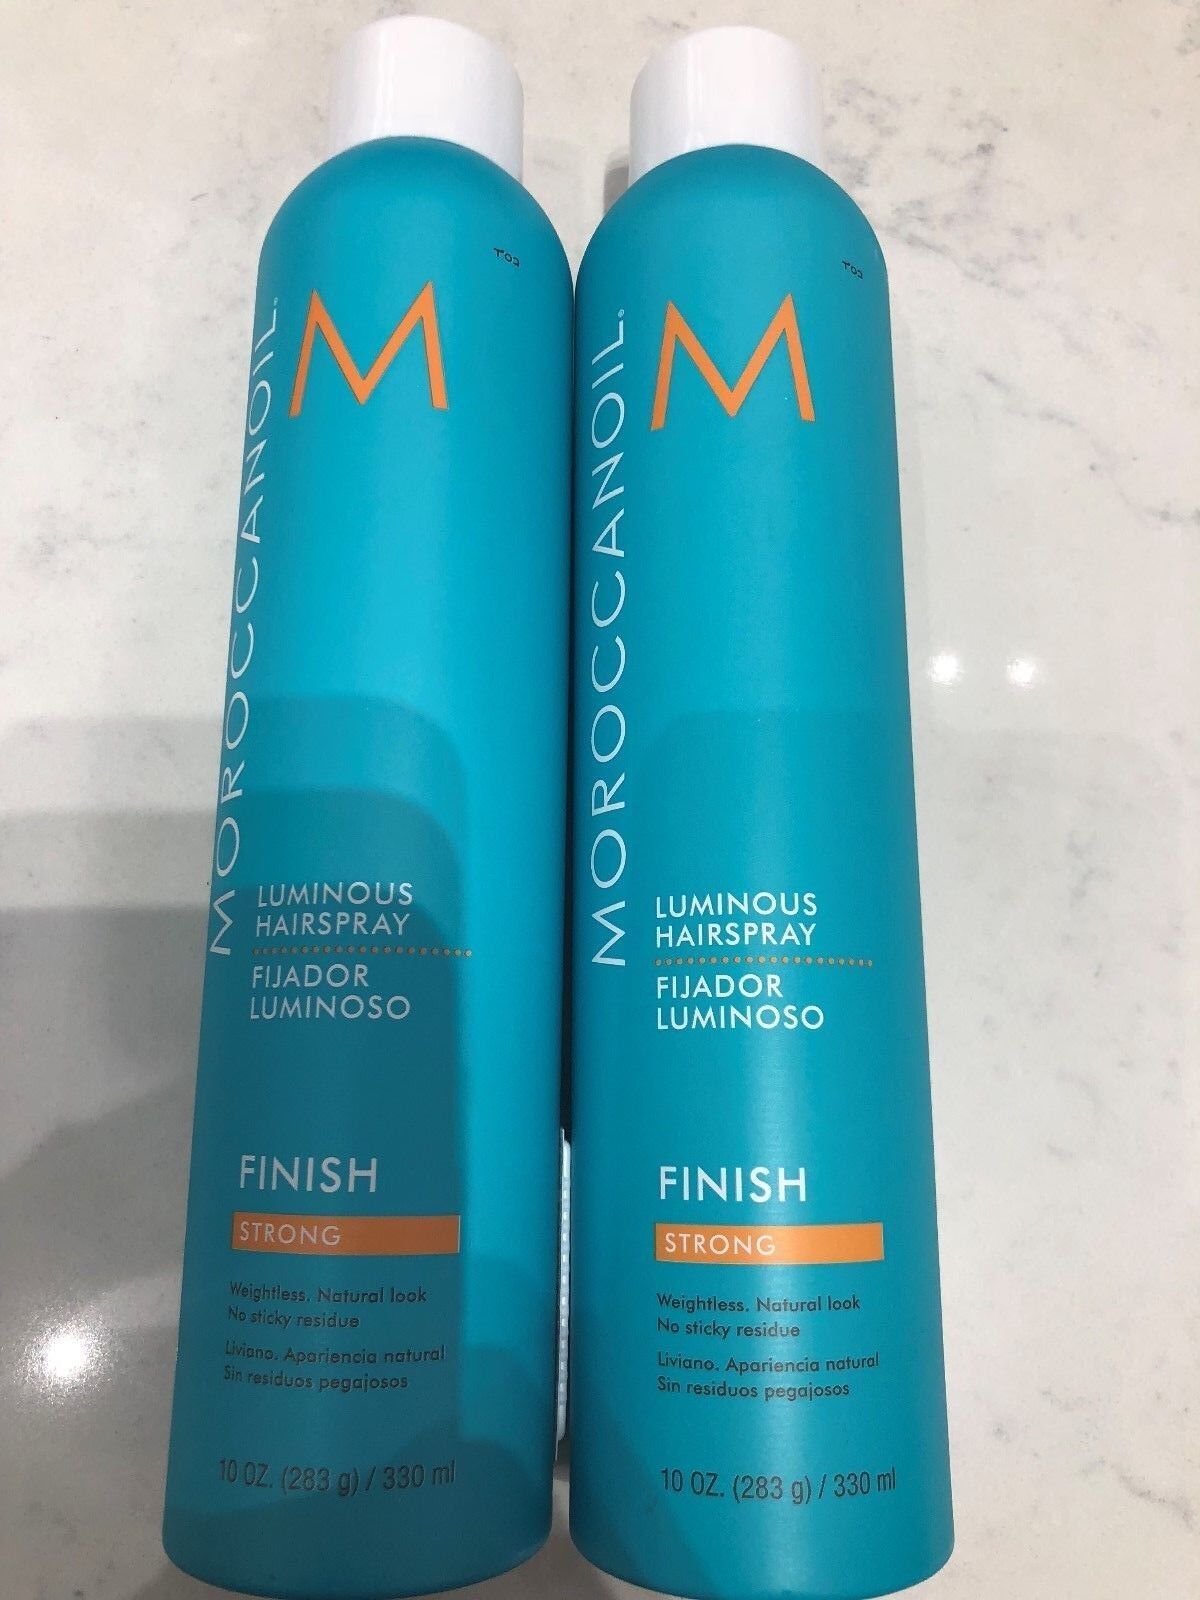 Moroccanoil 'Luminous' Hairspray Strong, Size 10 oz